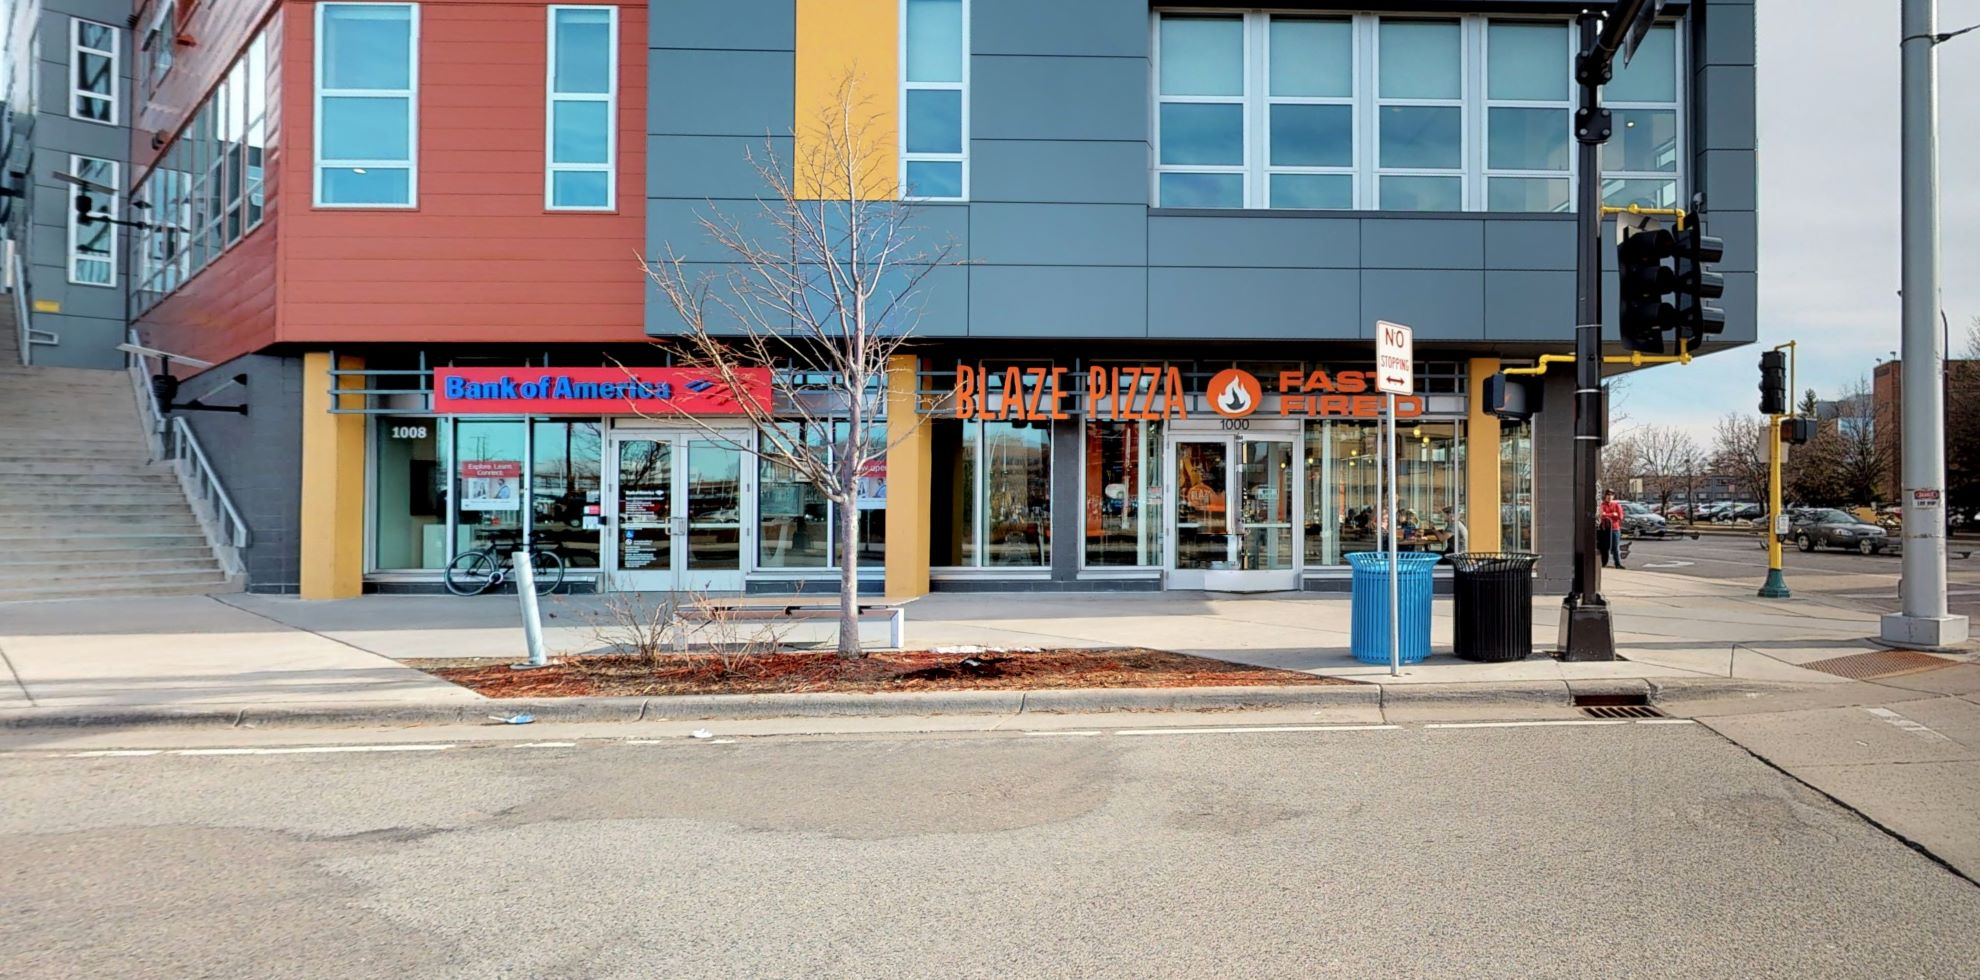 Bank of America Advanced Center with walk-up ATM | 1000 Washington Ave SE, Minneapolis, MN 55414